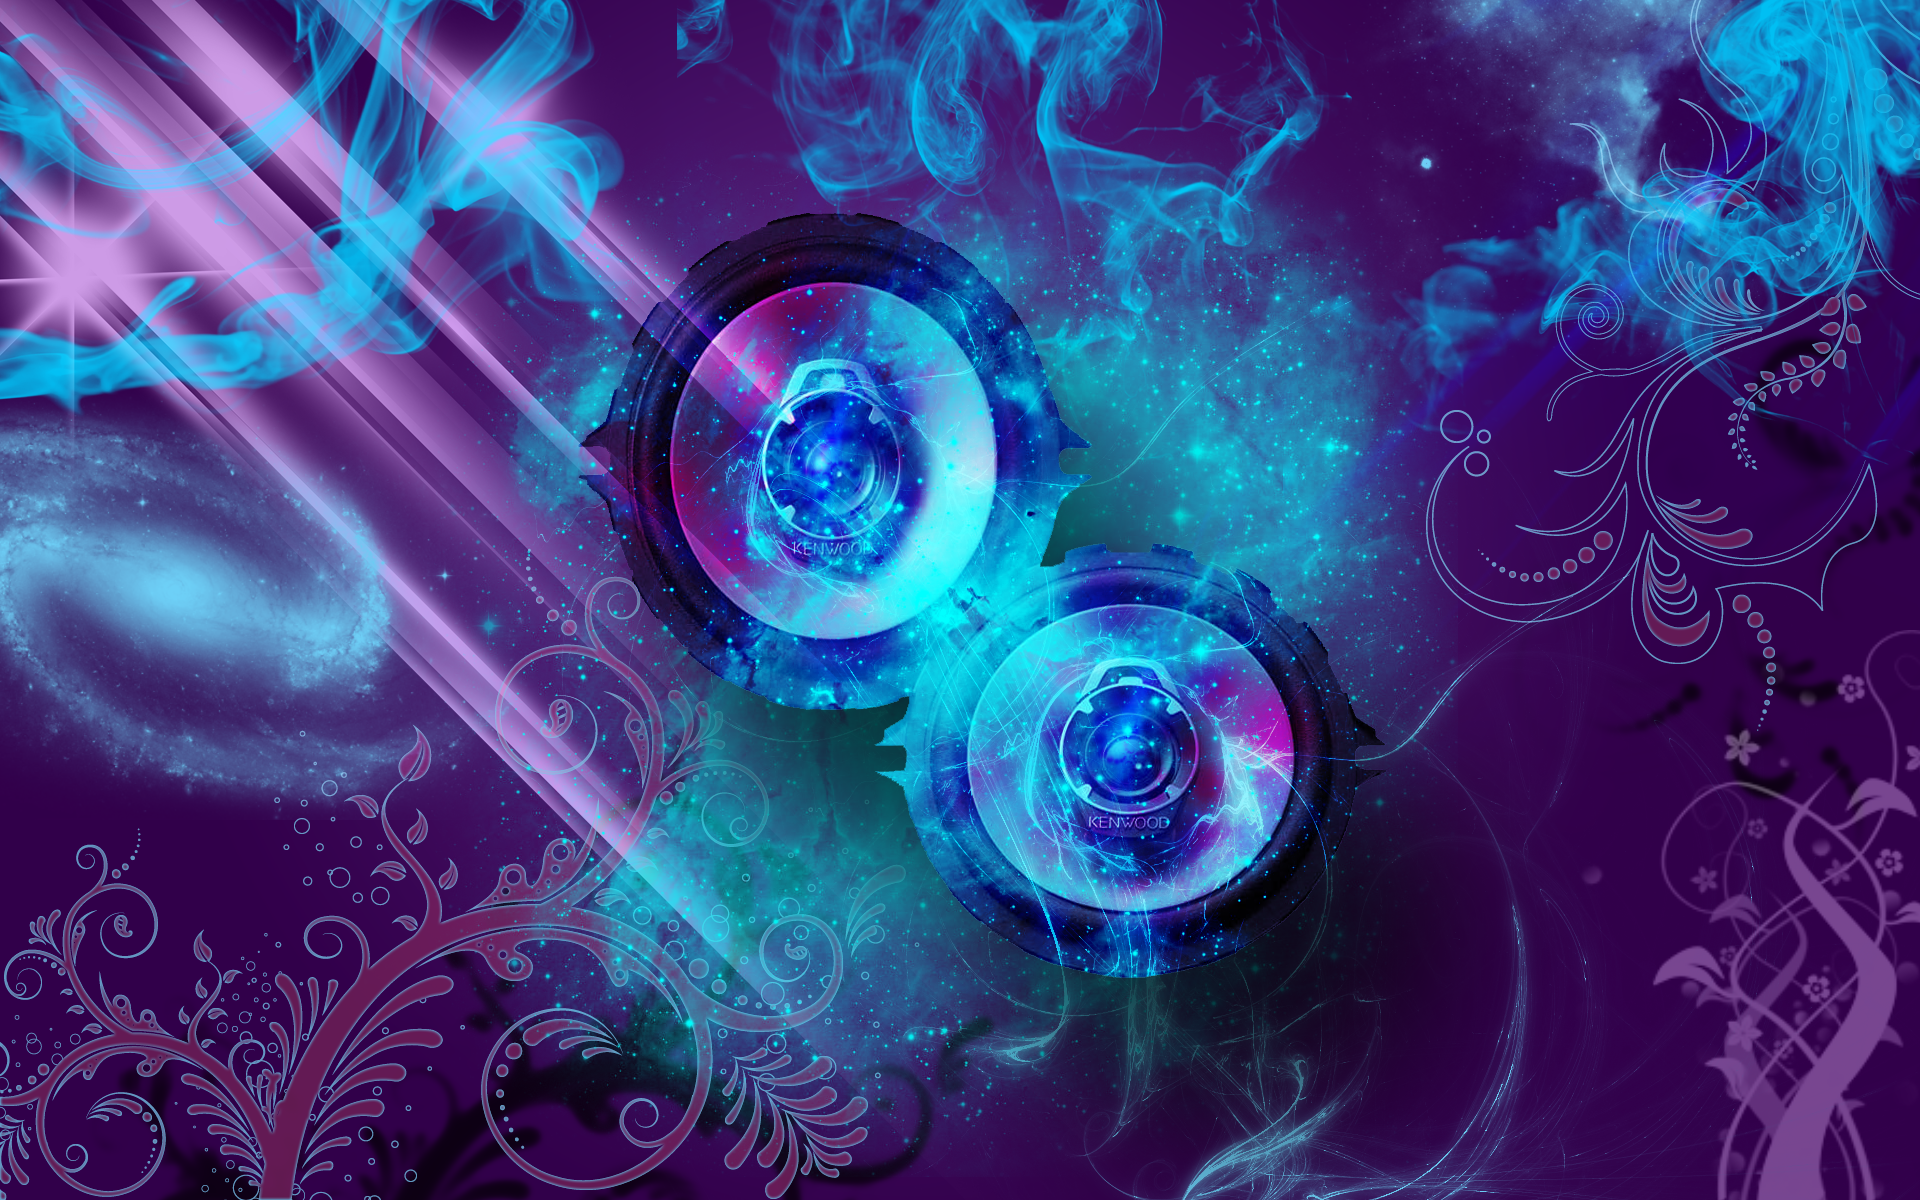 Cool Wallpaper Music Purple - Galaxy-Music-Wallpaper-23  Graphic_646688.png